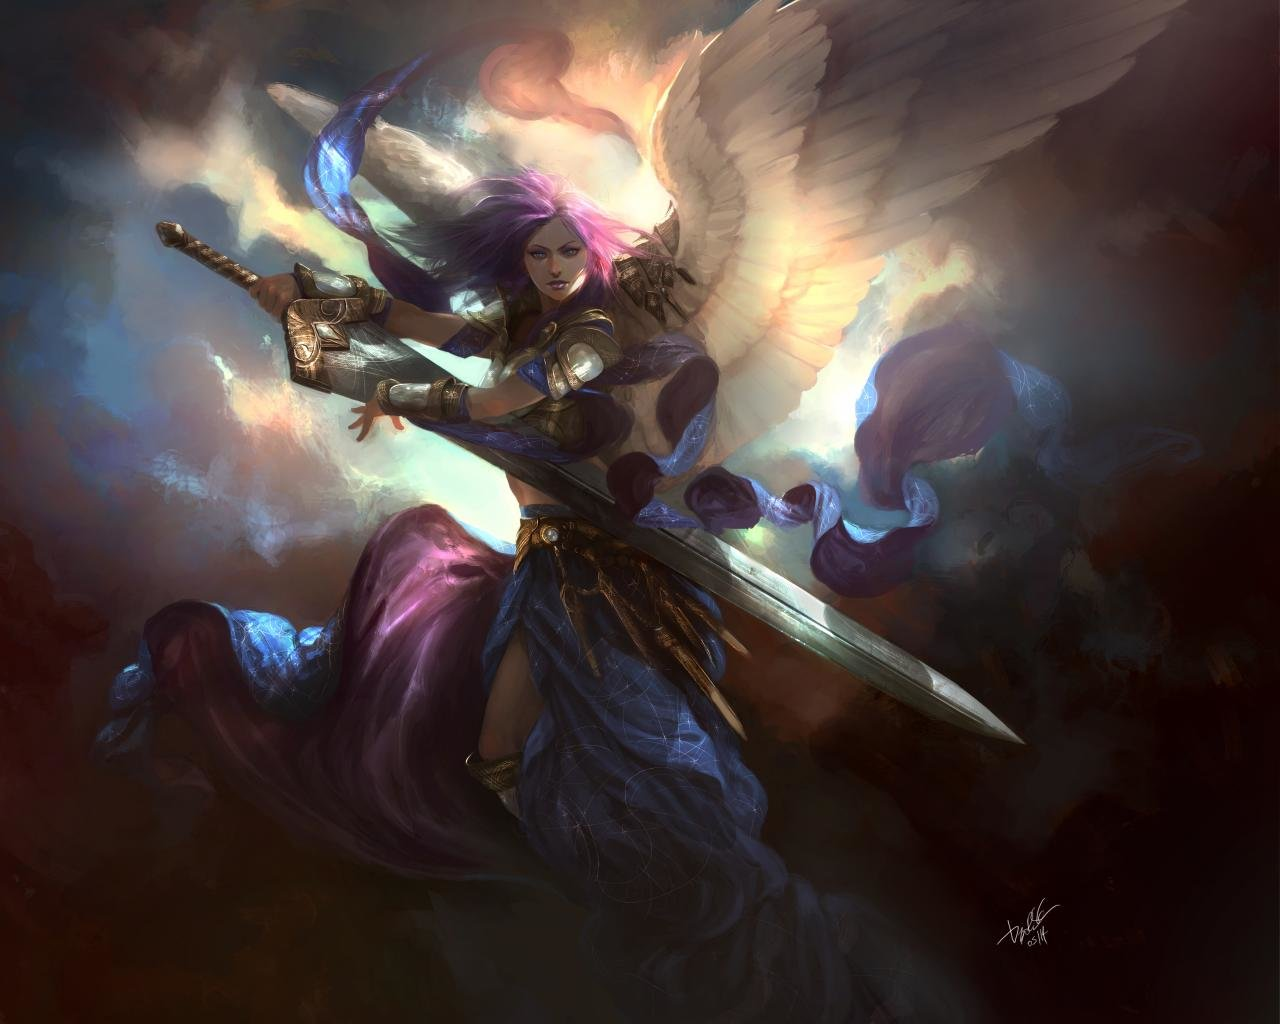 Free Download Angel Warrior Wallpaper ID352385 Hd 1280x1024 For Computer